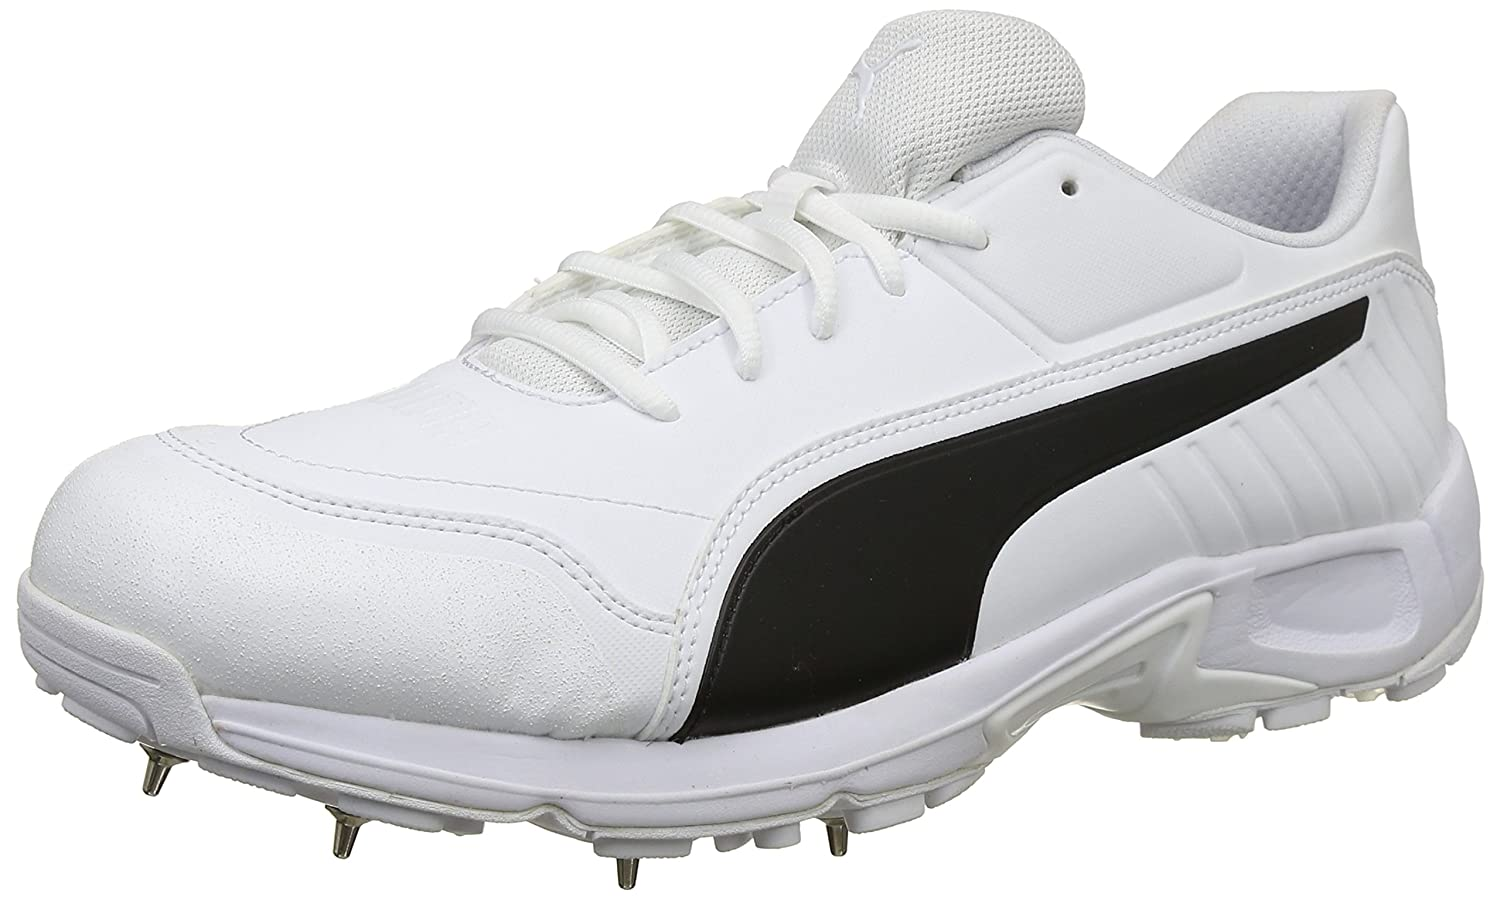 SpikeMen Leather Cricket Shoes